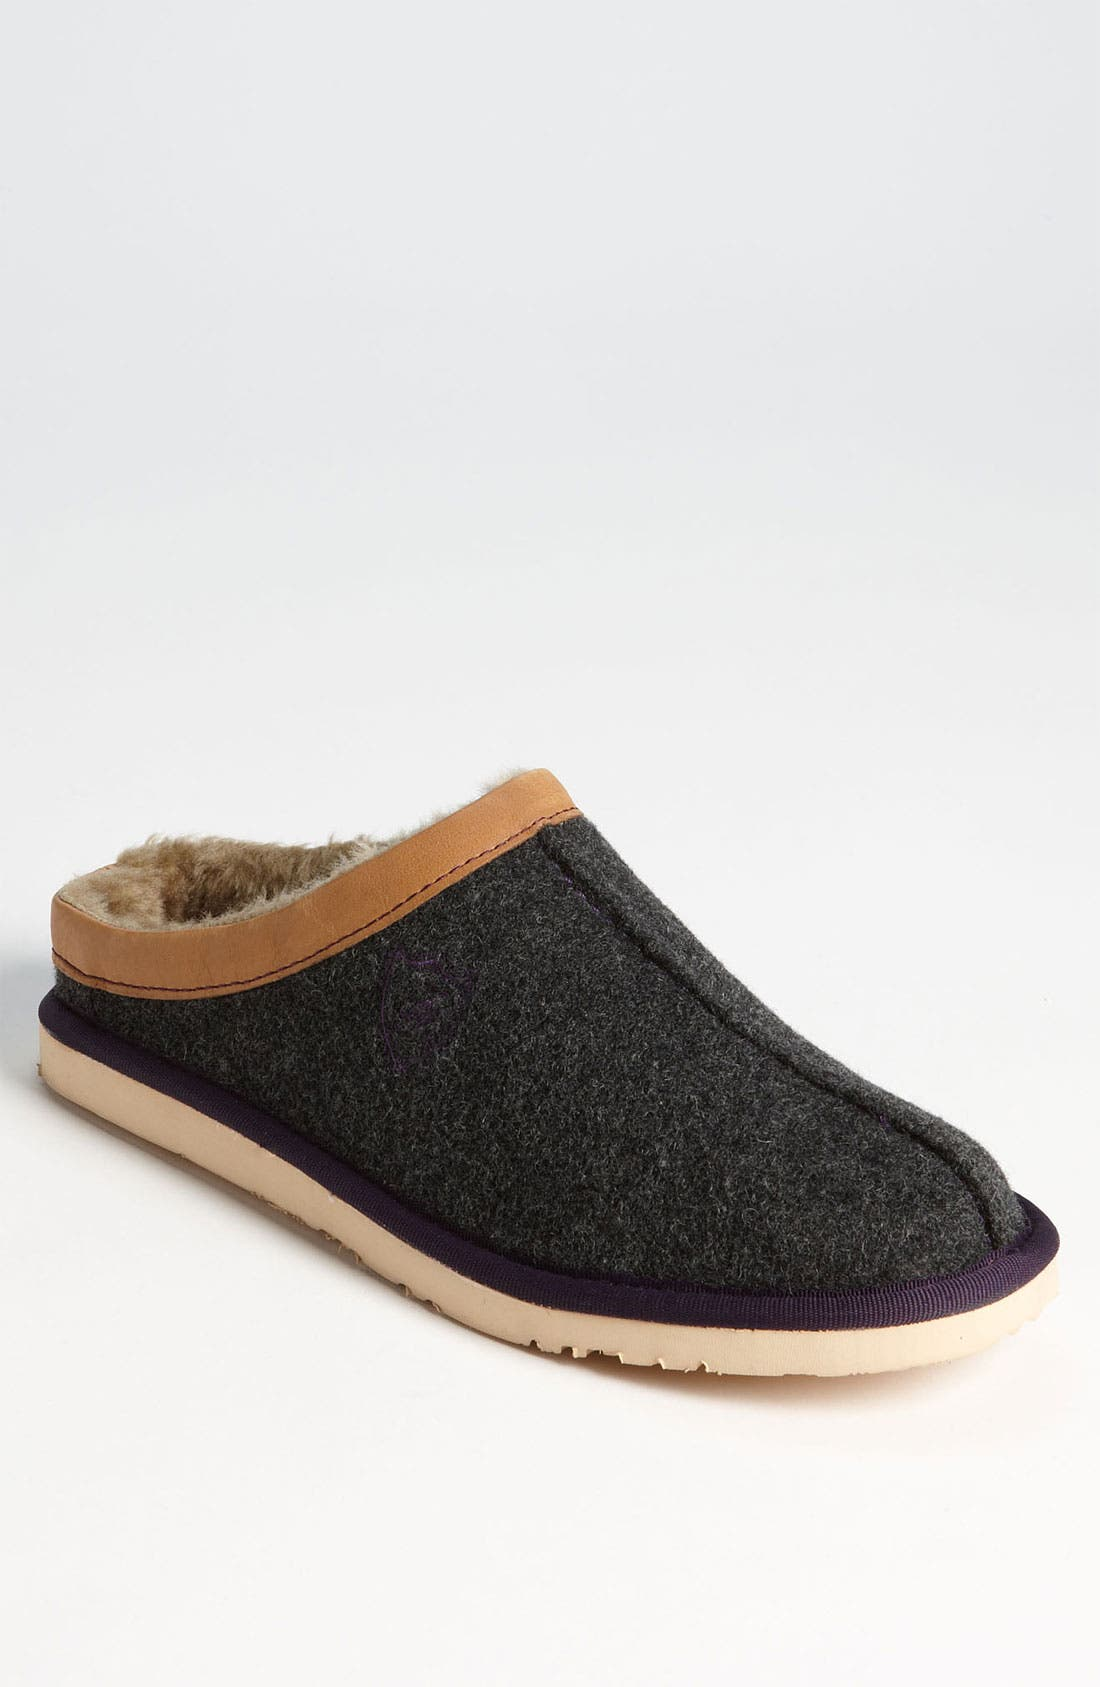 Alternate Image 1 Selected - Ted Baker London 'Dibe' Slipper